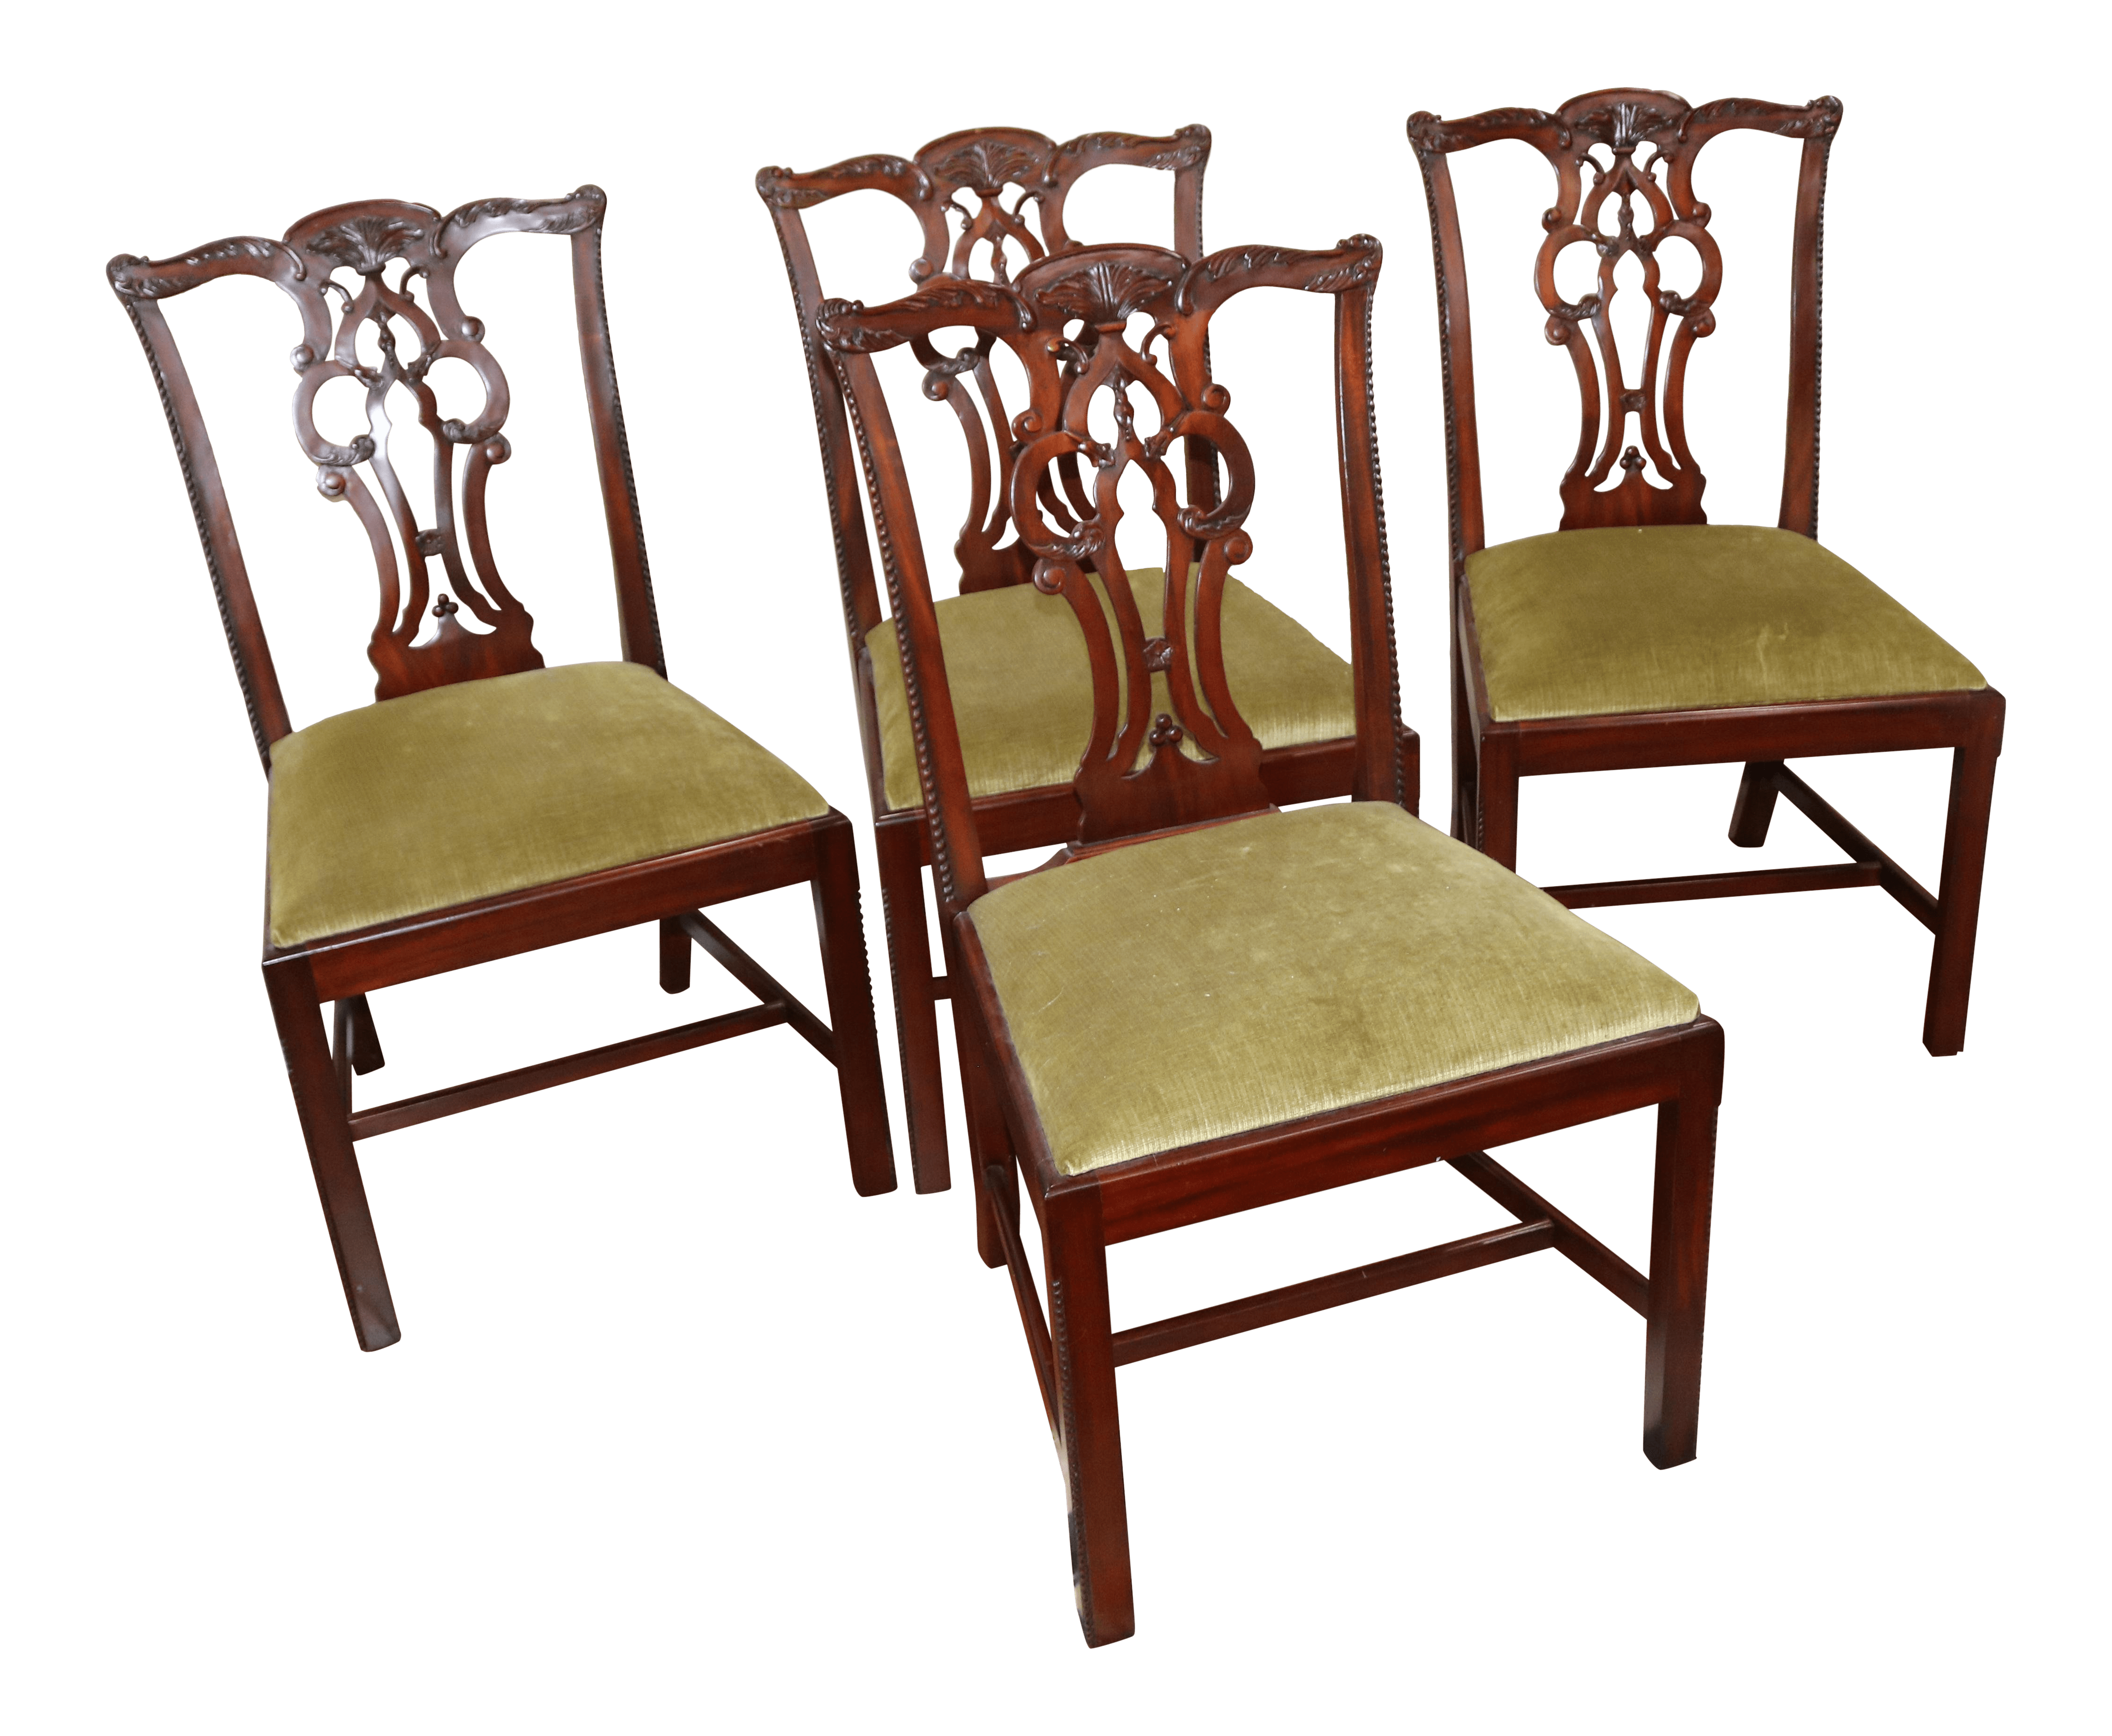 maitland smith dining chairs swing chair bed 21st century mahogany chippendale style set of 4